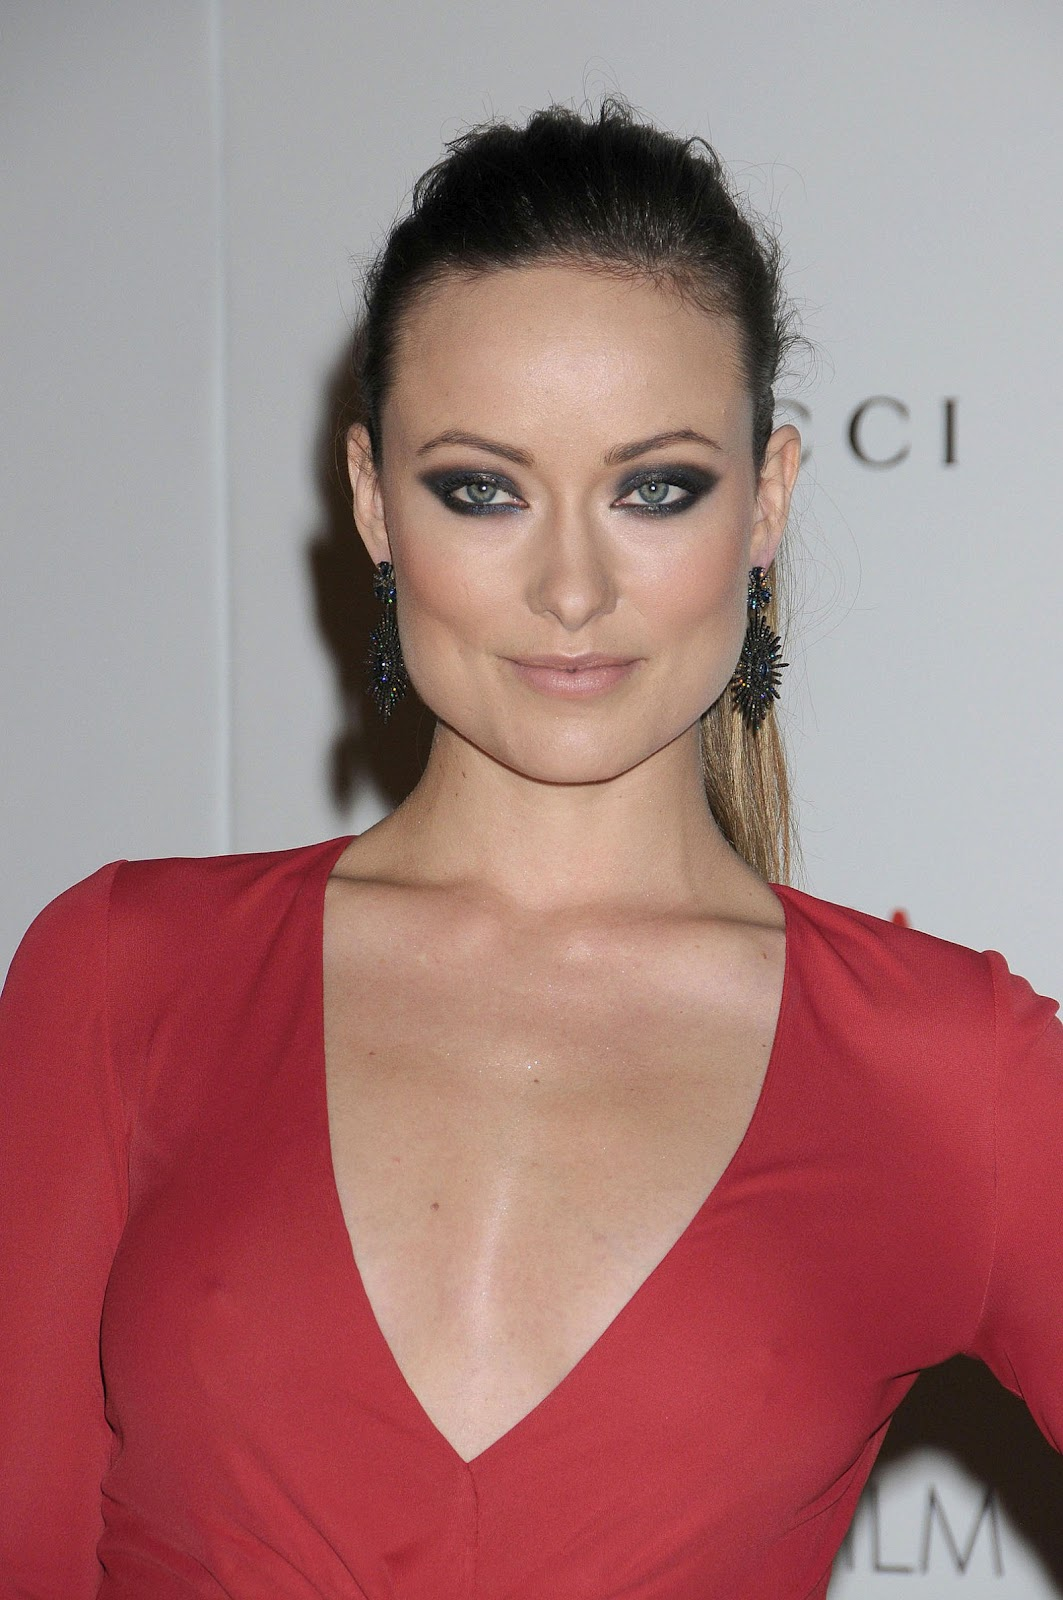 Olivia Wilde Profile And New Pictures 2013: : Olivia Wilde Hot